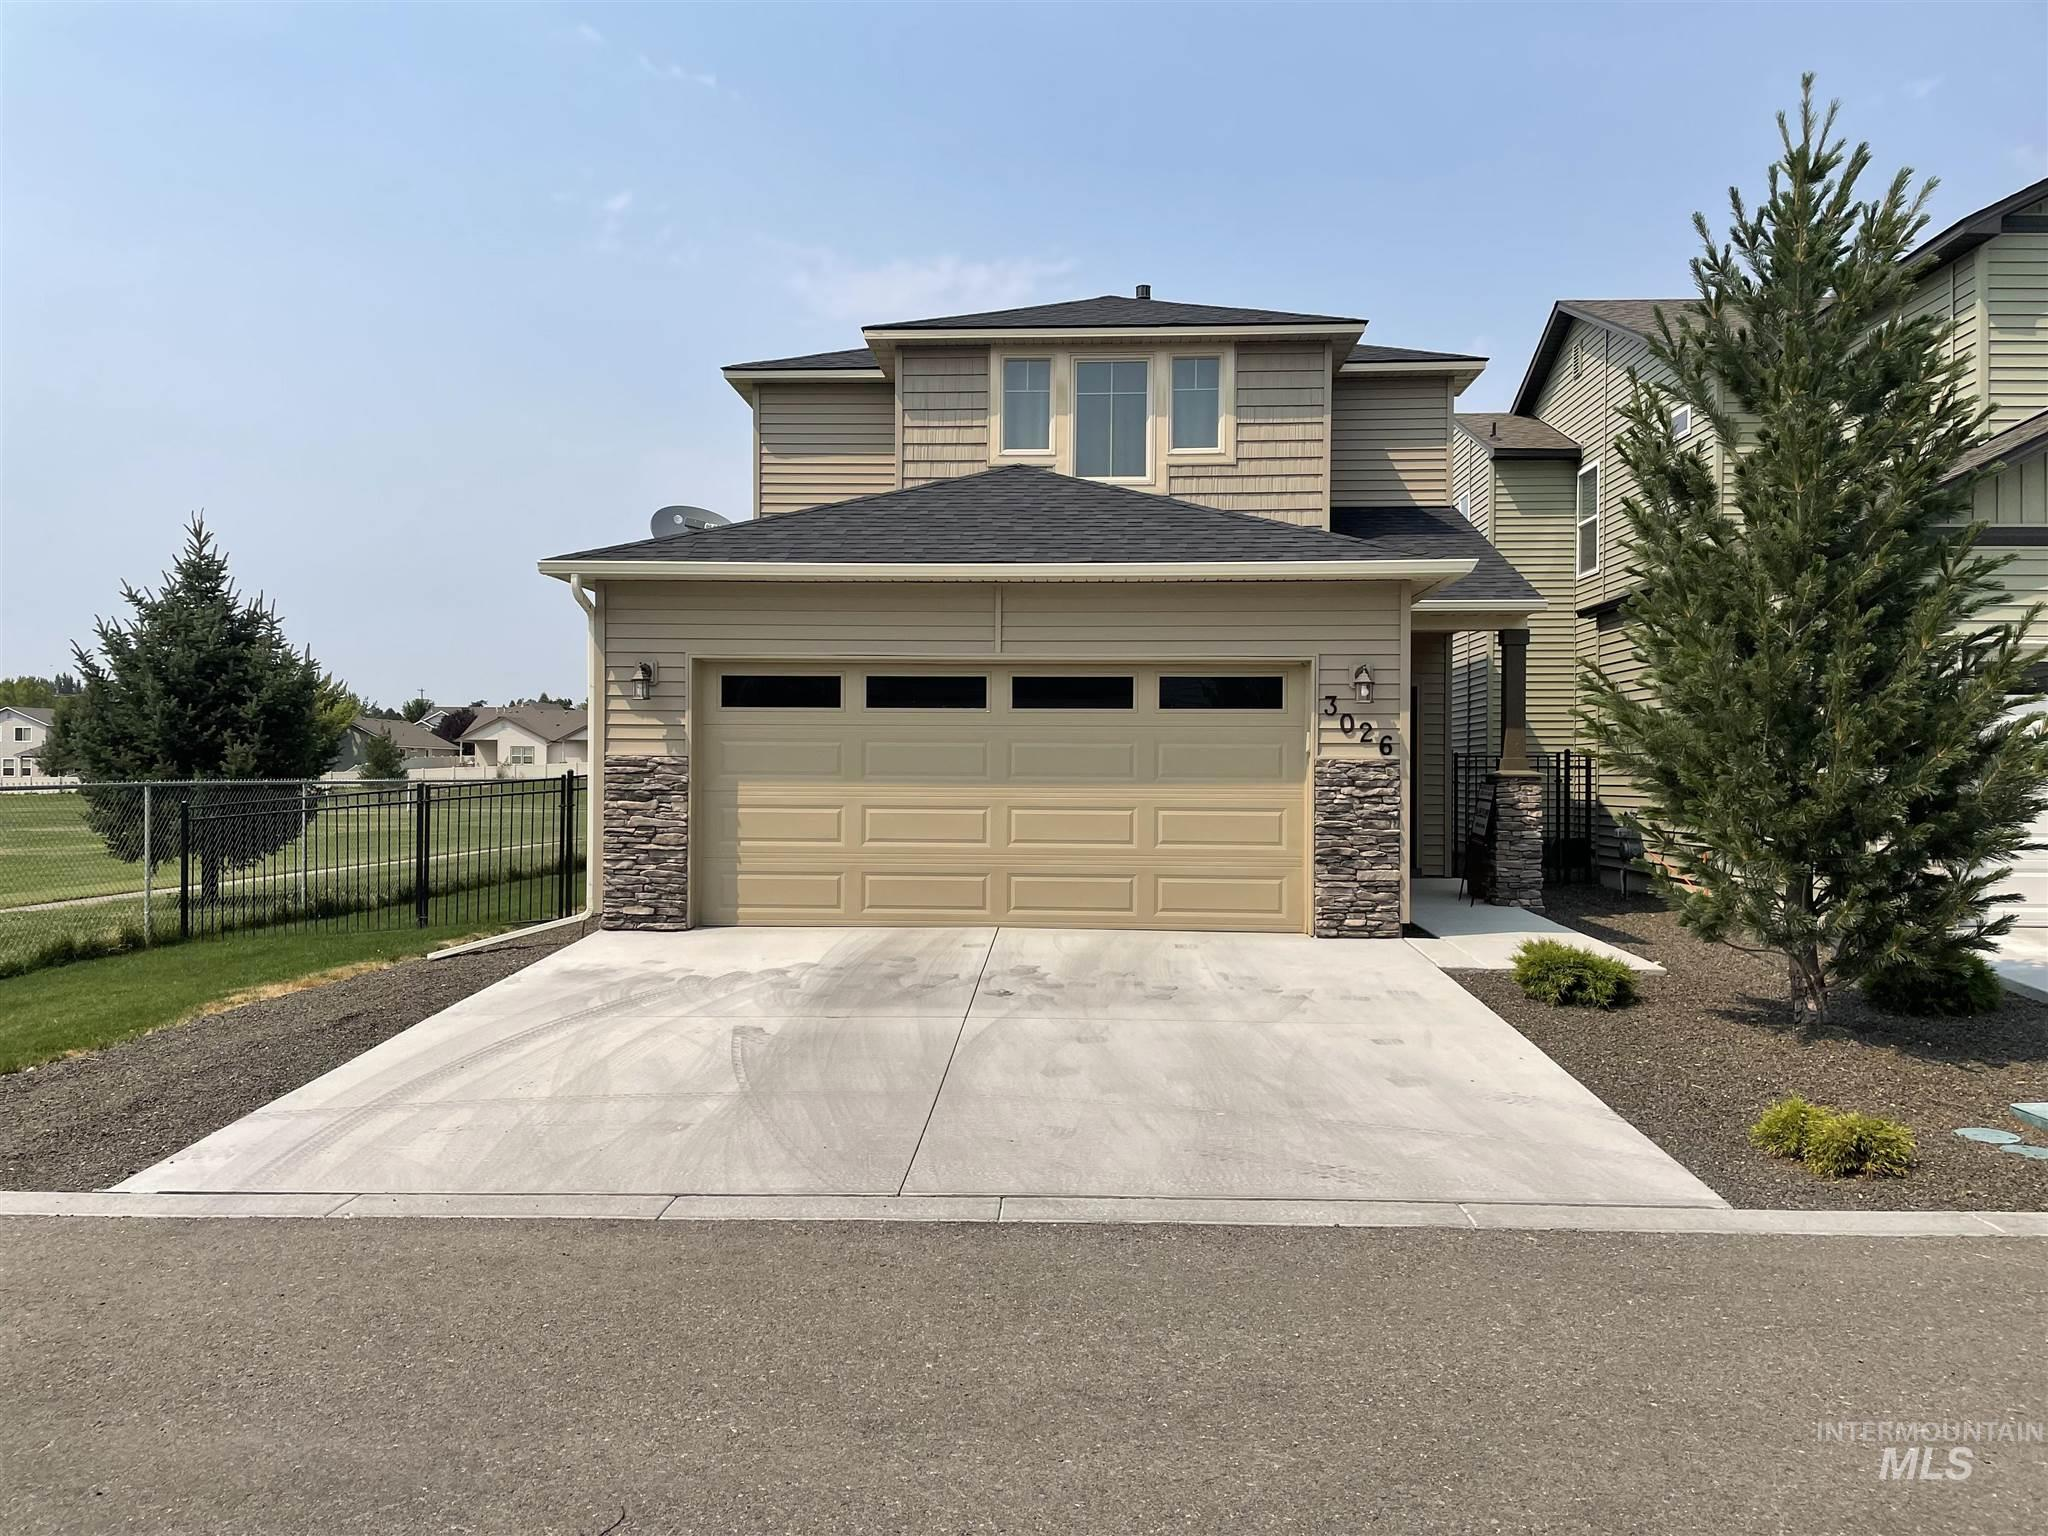 Welcome home! This beautiful like new home offers open floor plan, with no neighbors to the north or west. Sit back and relax under your gazebo, and enjoy your no maintenance fully fenced backyard. Lawn, landscaping, and sprinklers, are maintained by HOA. All counter-tops are granite. Awesome walk-in pantry. Upstairs has a large master suite w/dual vanity and walk-in closet + built-in desk in the loft, come check out this awesome house it won't last long!